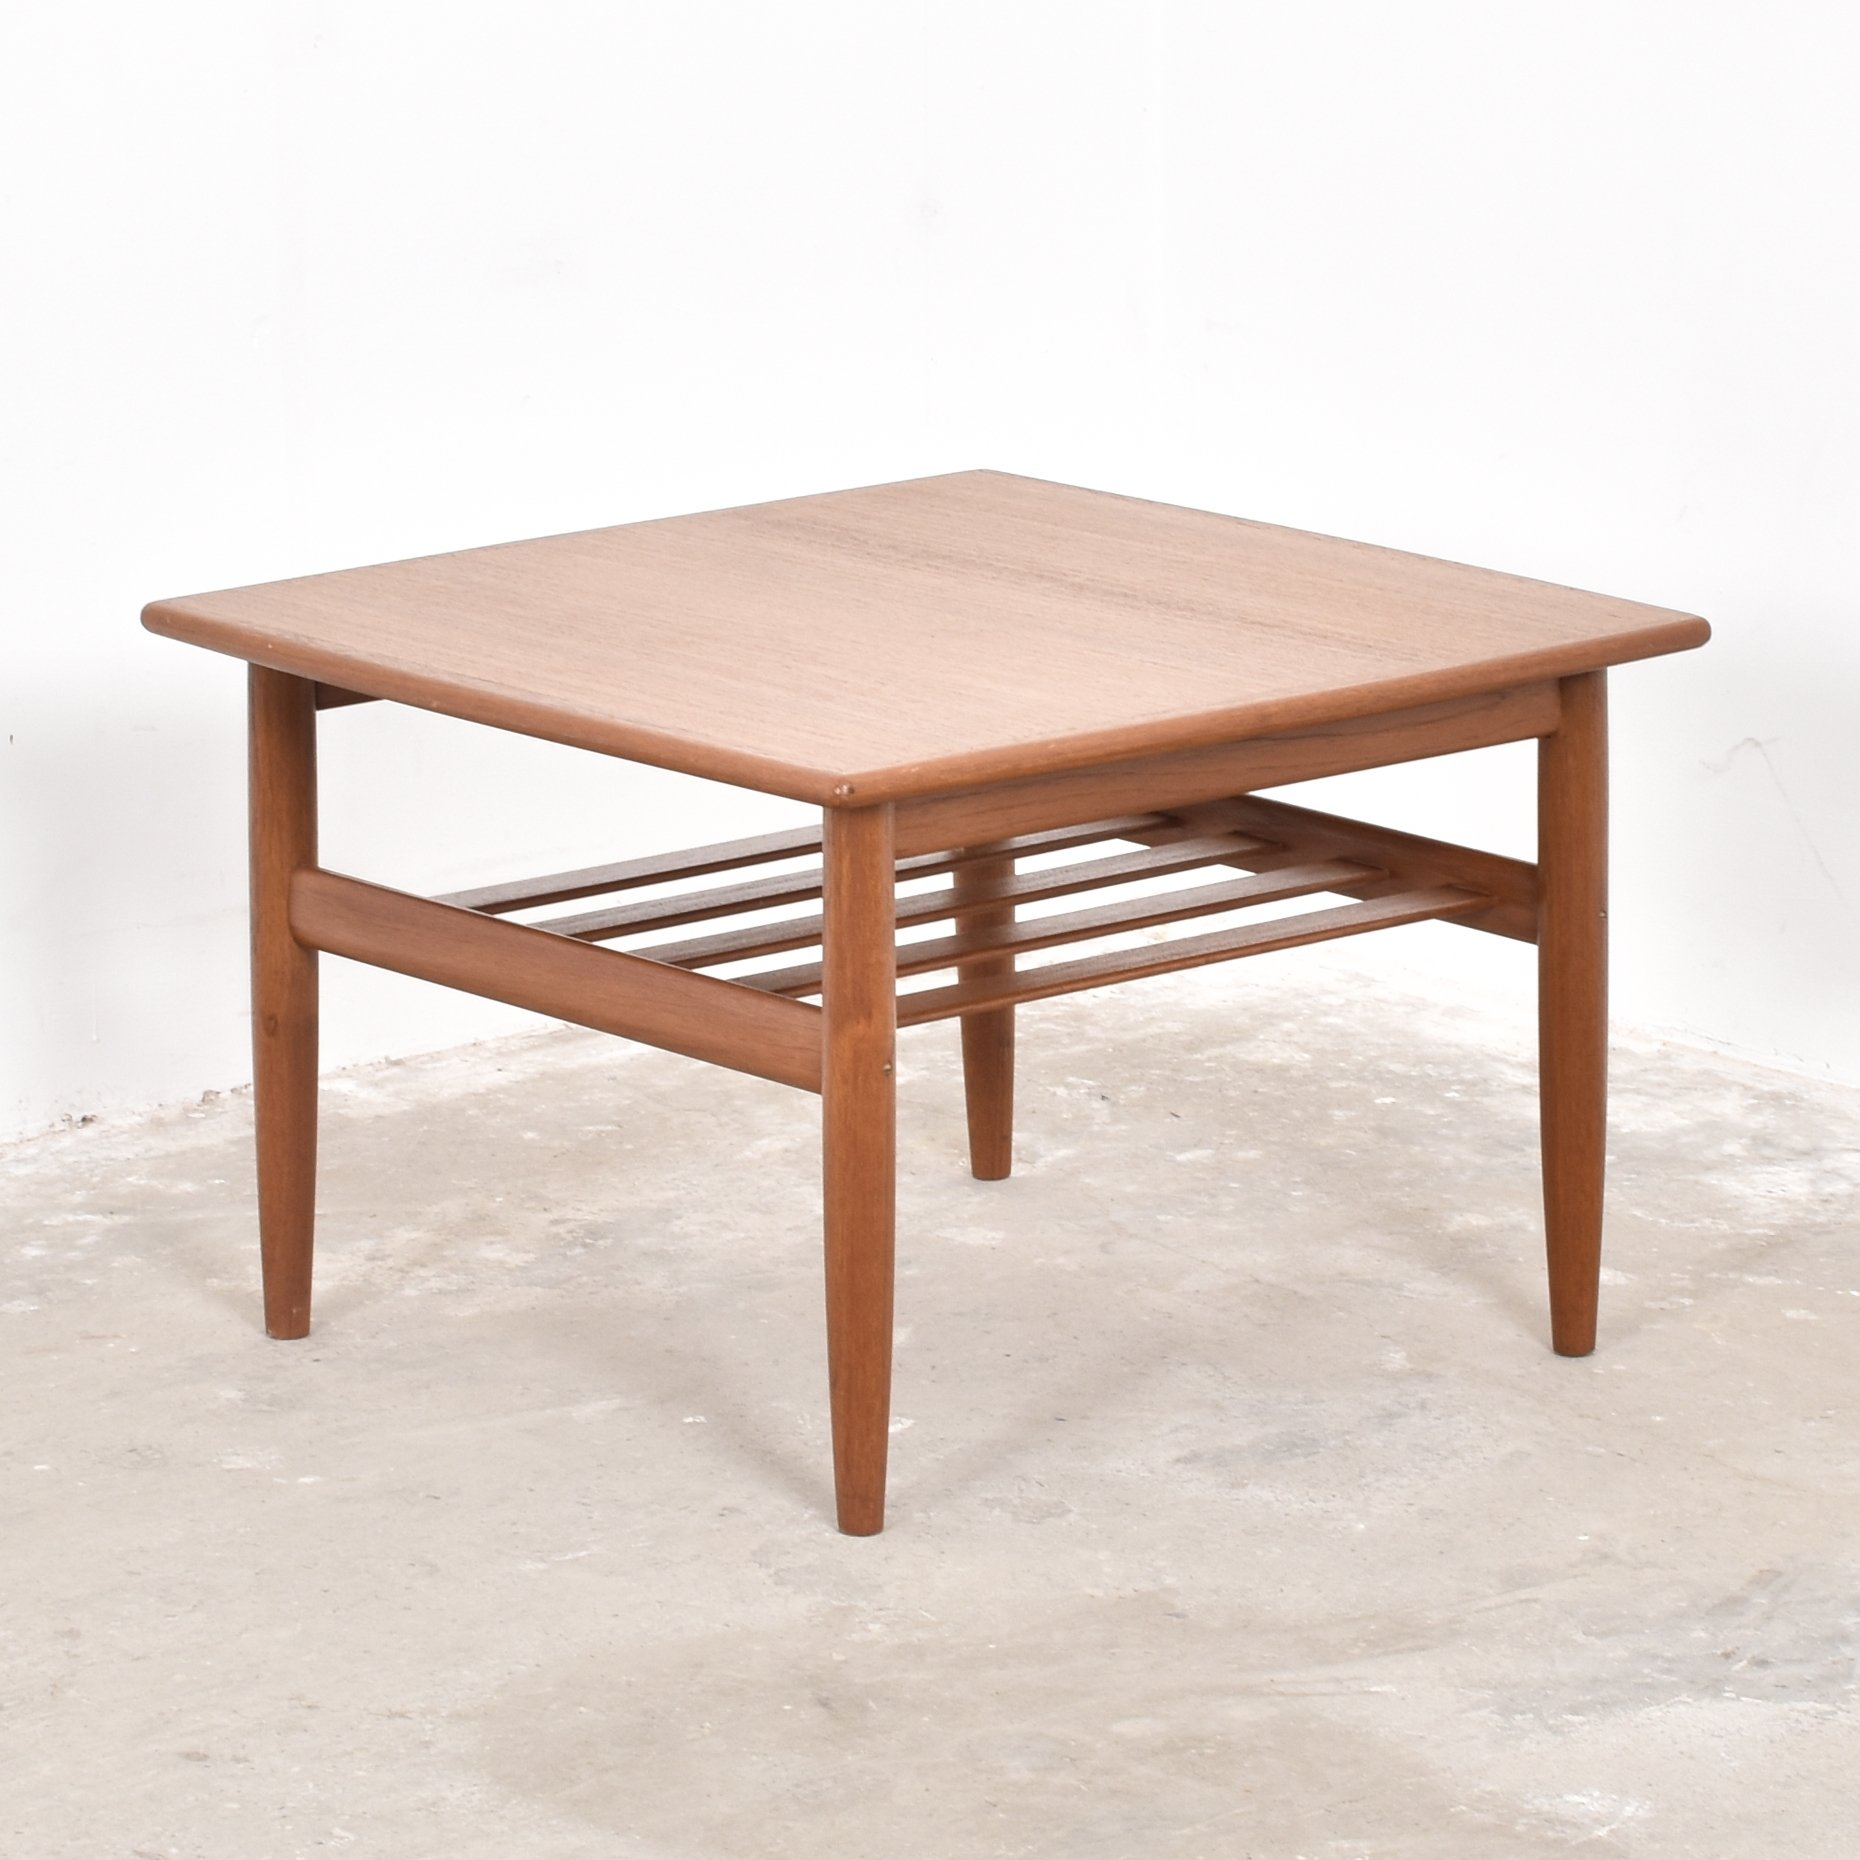 Bon Grete Jalk Coffee Table, 1950s